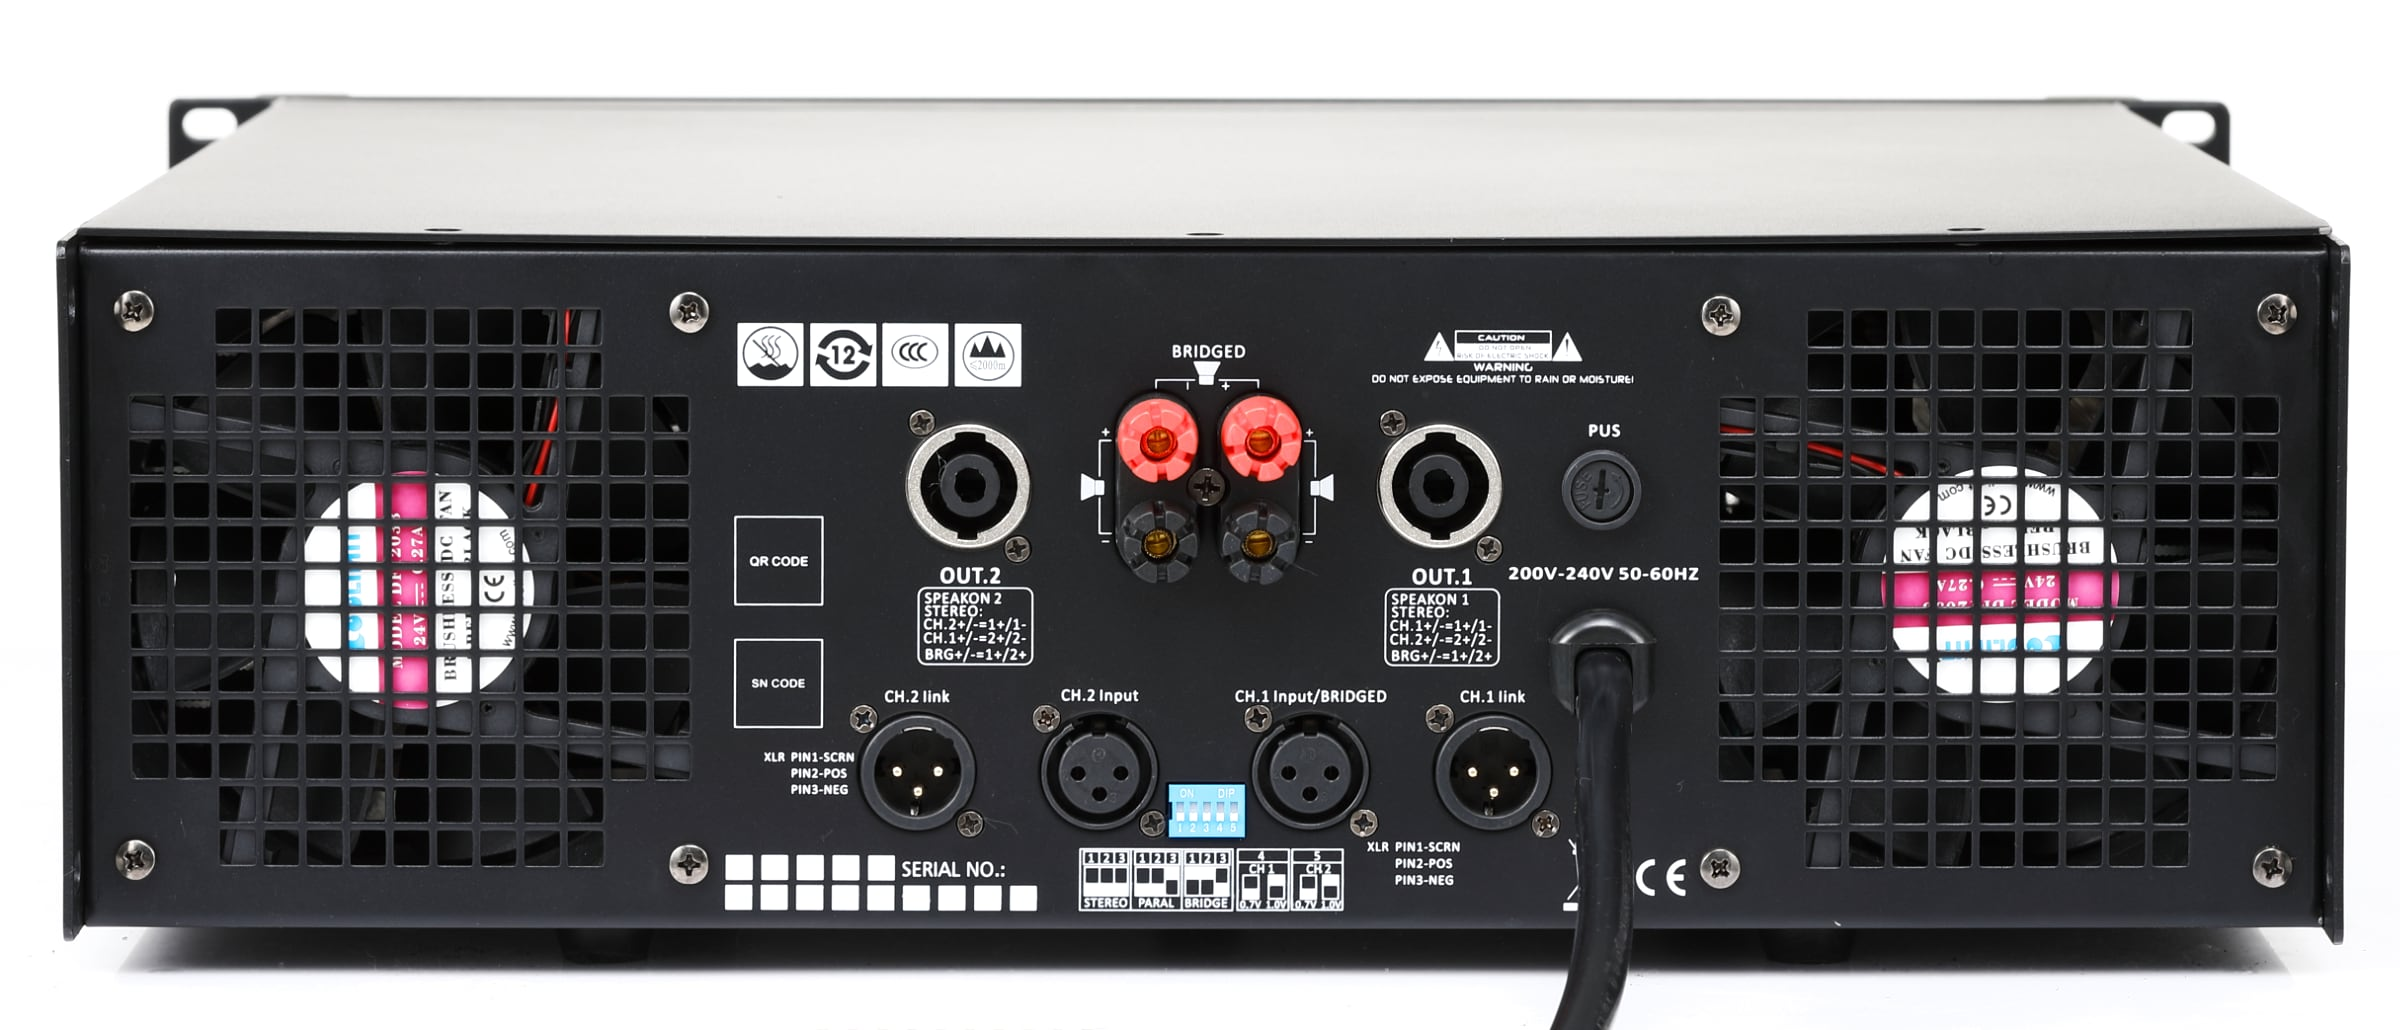 Công suất AAP DX-13002